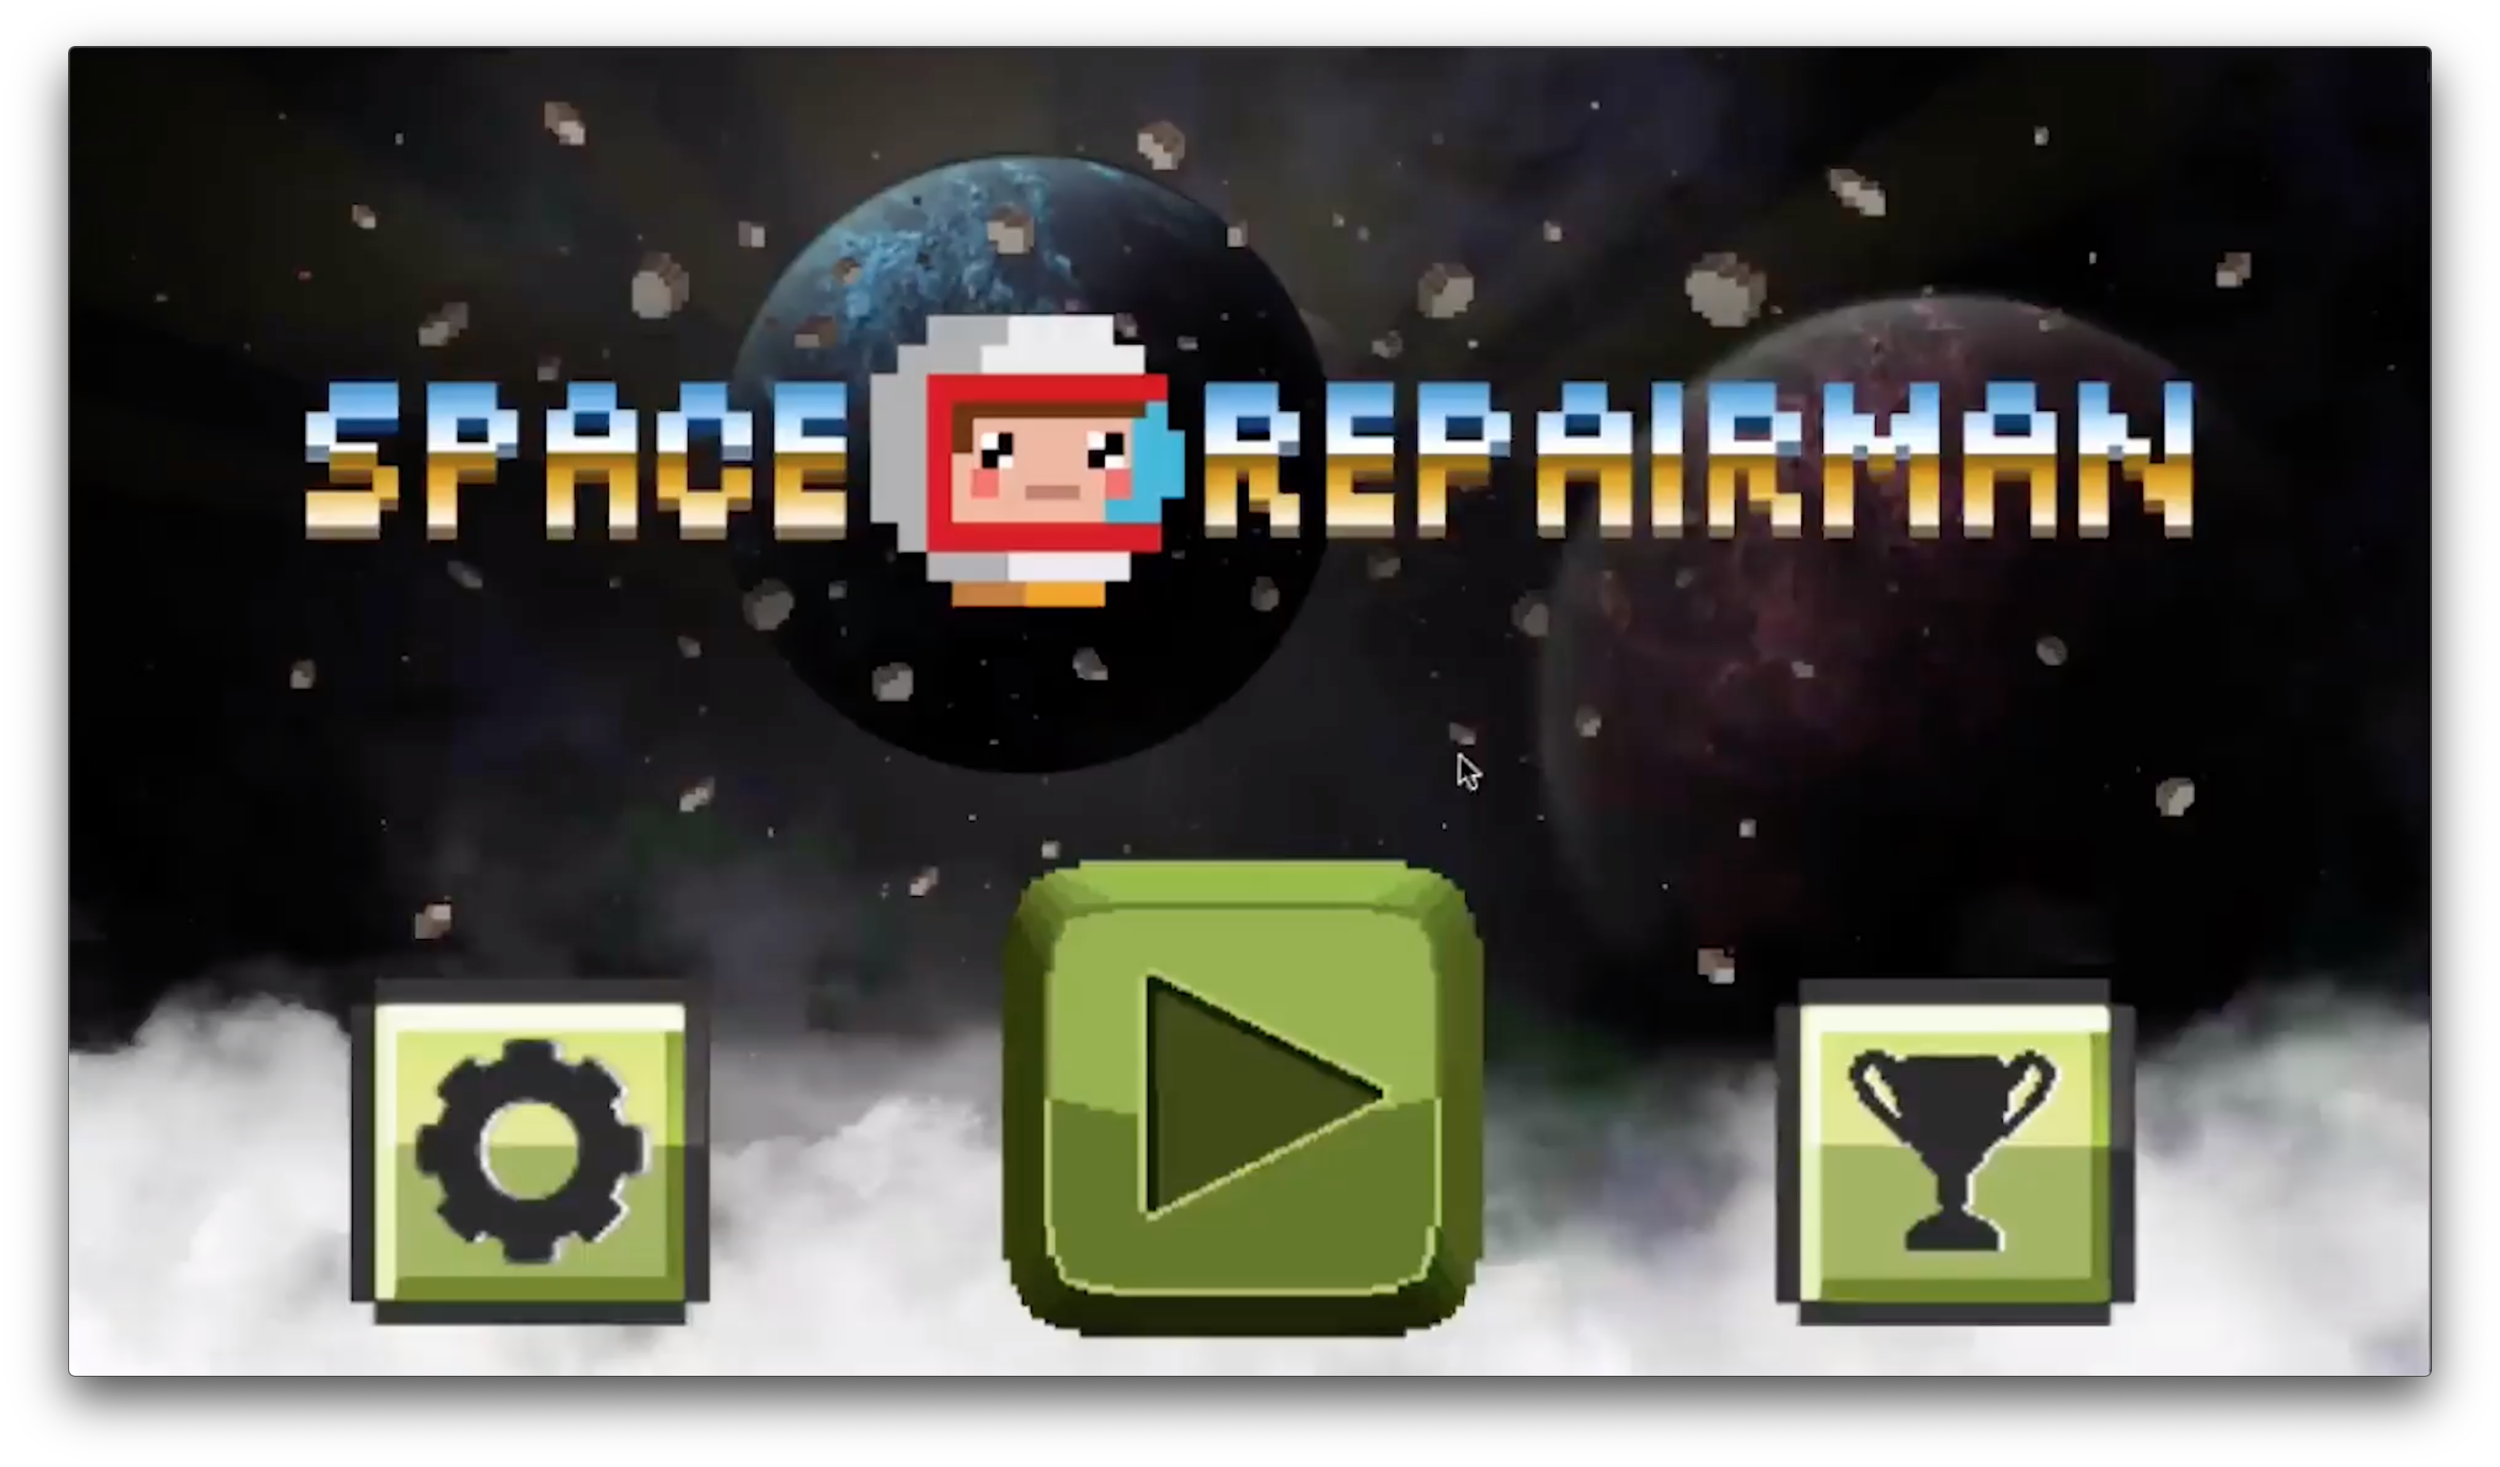 Space Repairman main menu